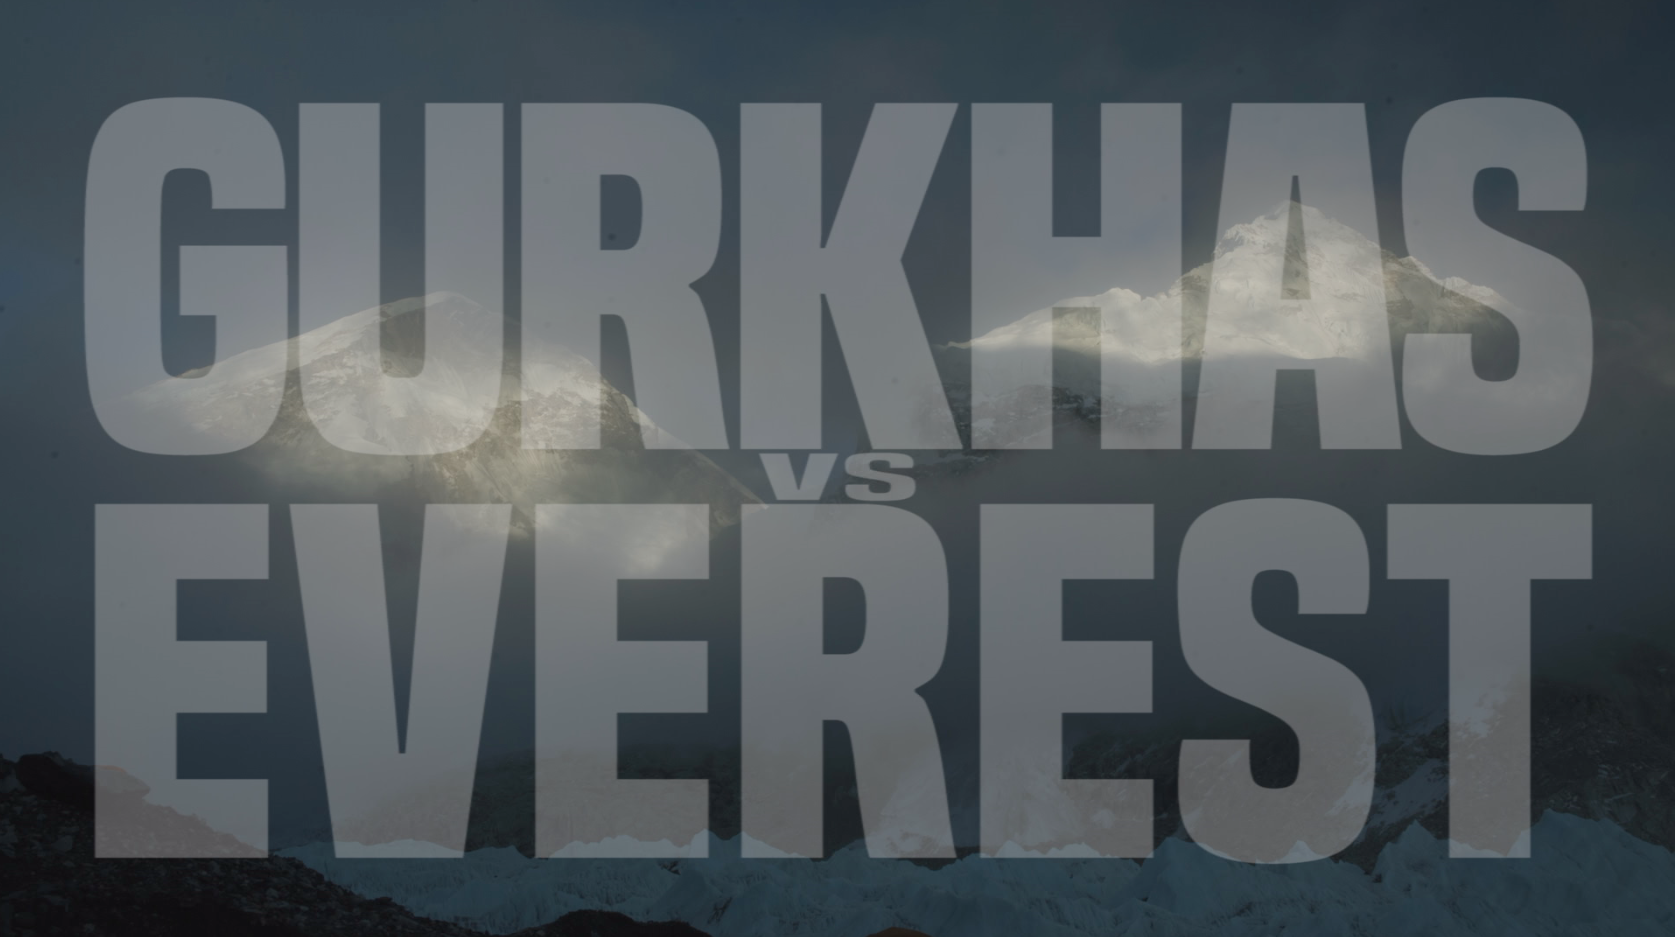 Gurkhas vs Everest